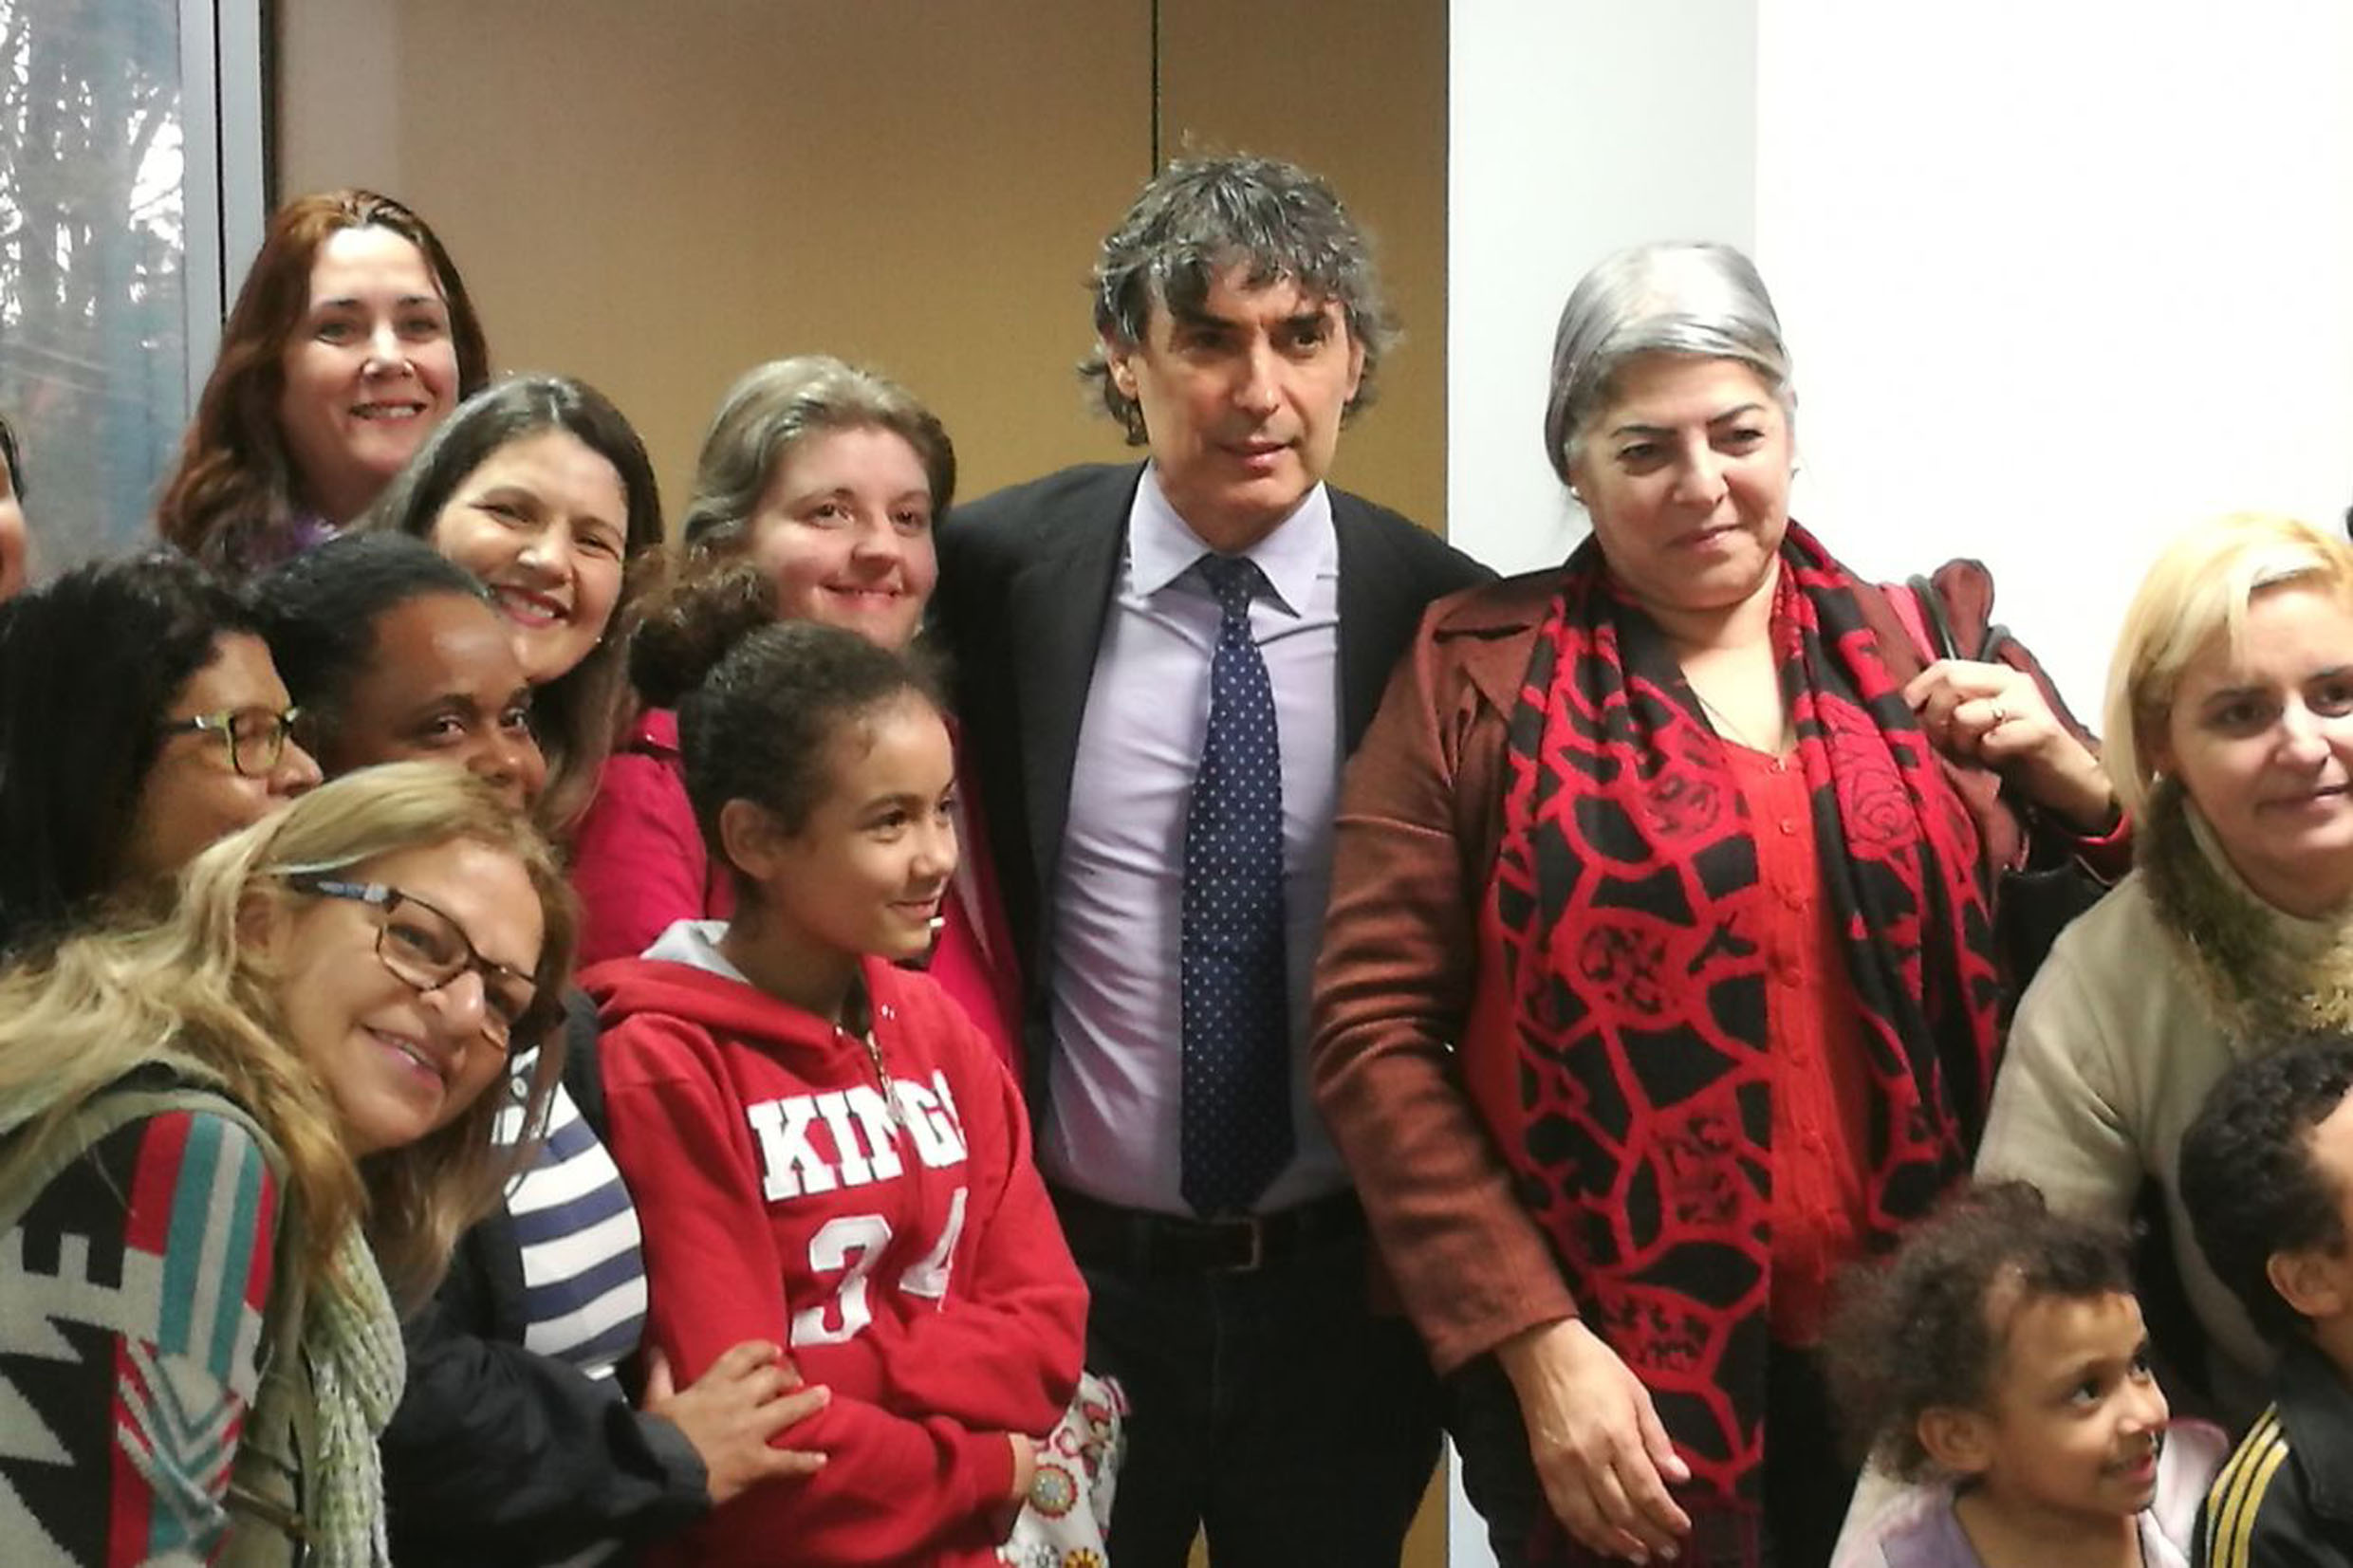 Carlos Giannazi (centro) apoiou os professores na ALESP<a style='float:right' href='https://www3.al.sp.gov.br/repositorio/noticia/N-07-2017/fg205102.jpg' target=_blank><img src='/_img/material-file-download-white.png' width='14px' alt='Clique para baixar a imagem'></a>